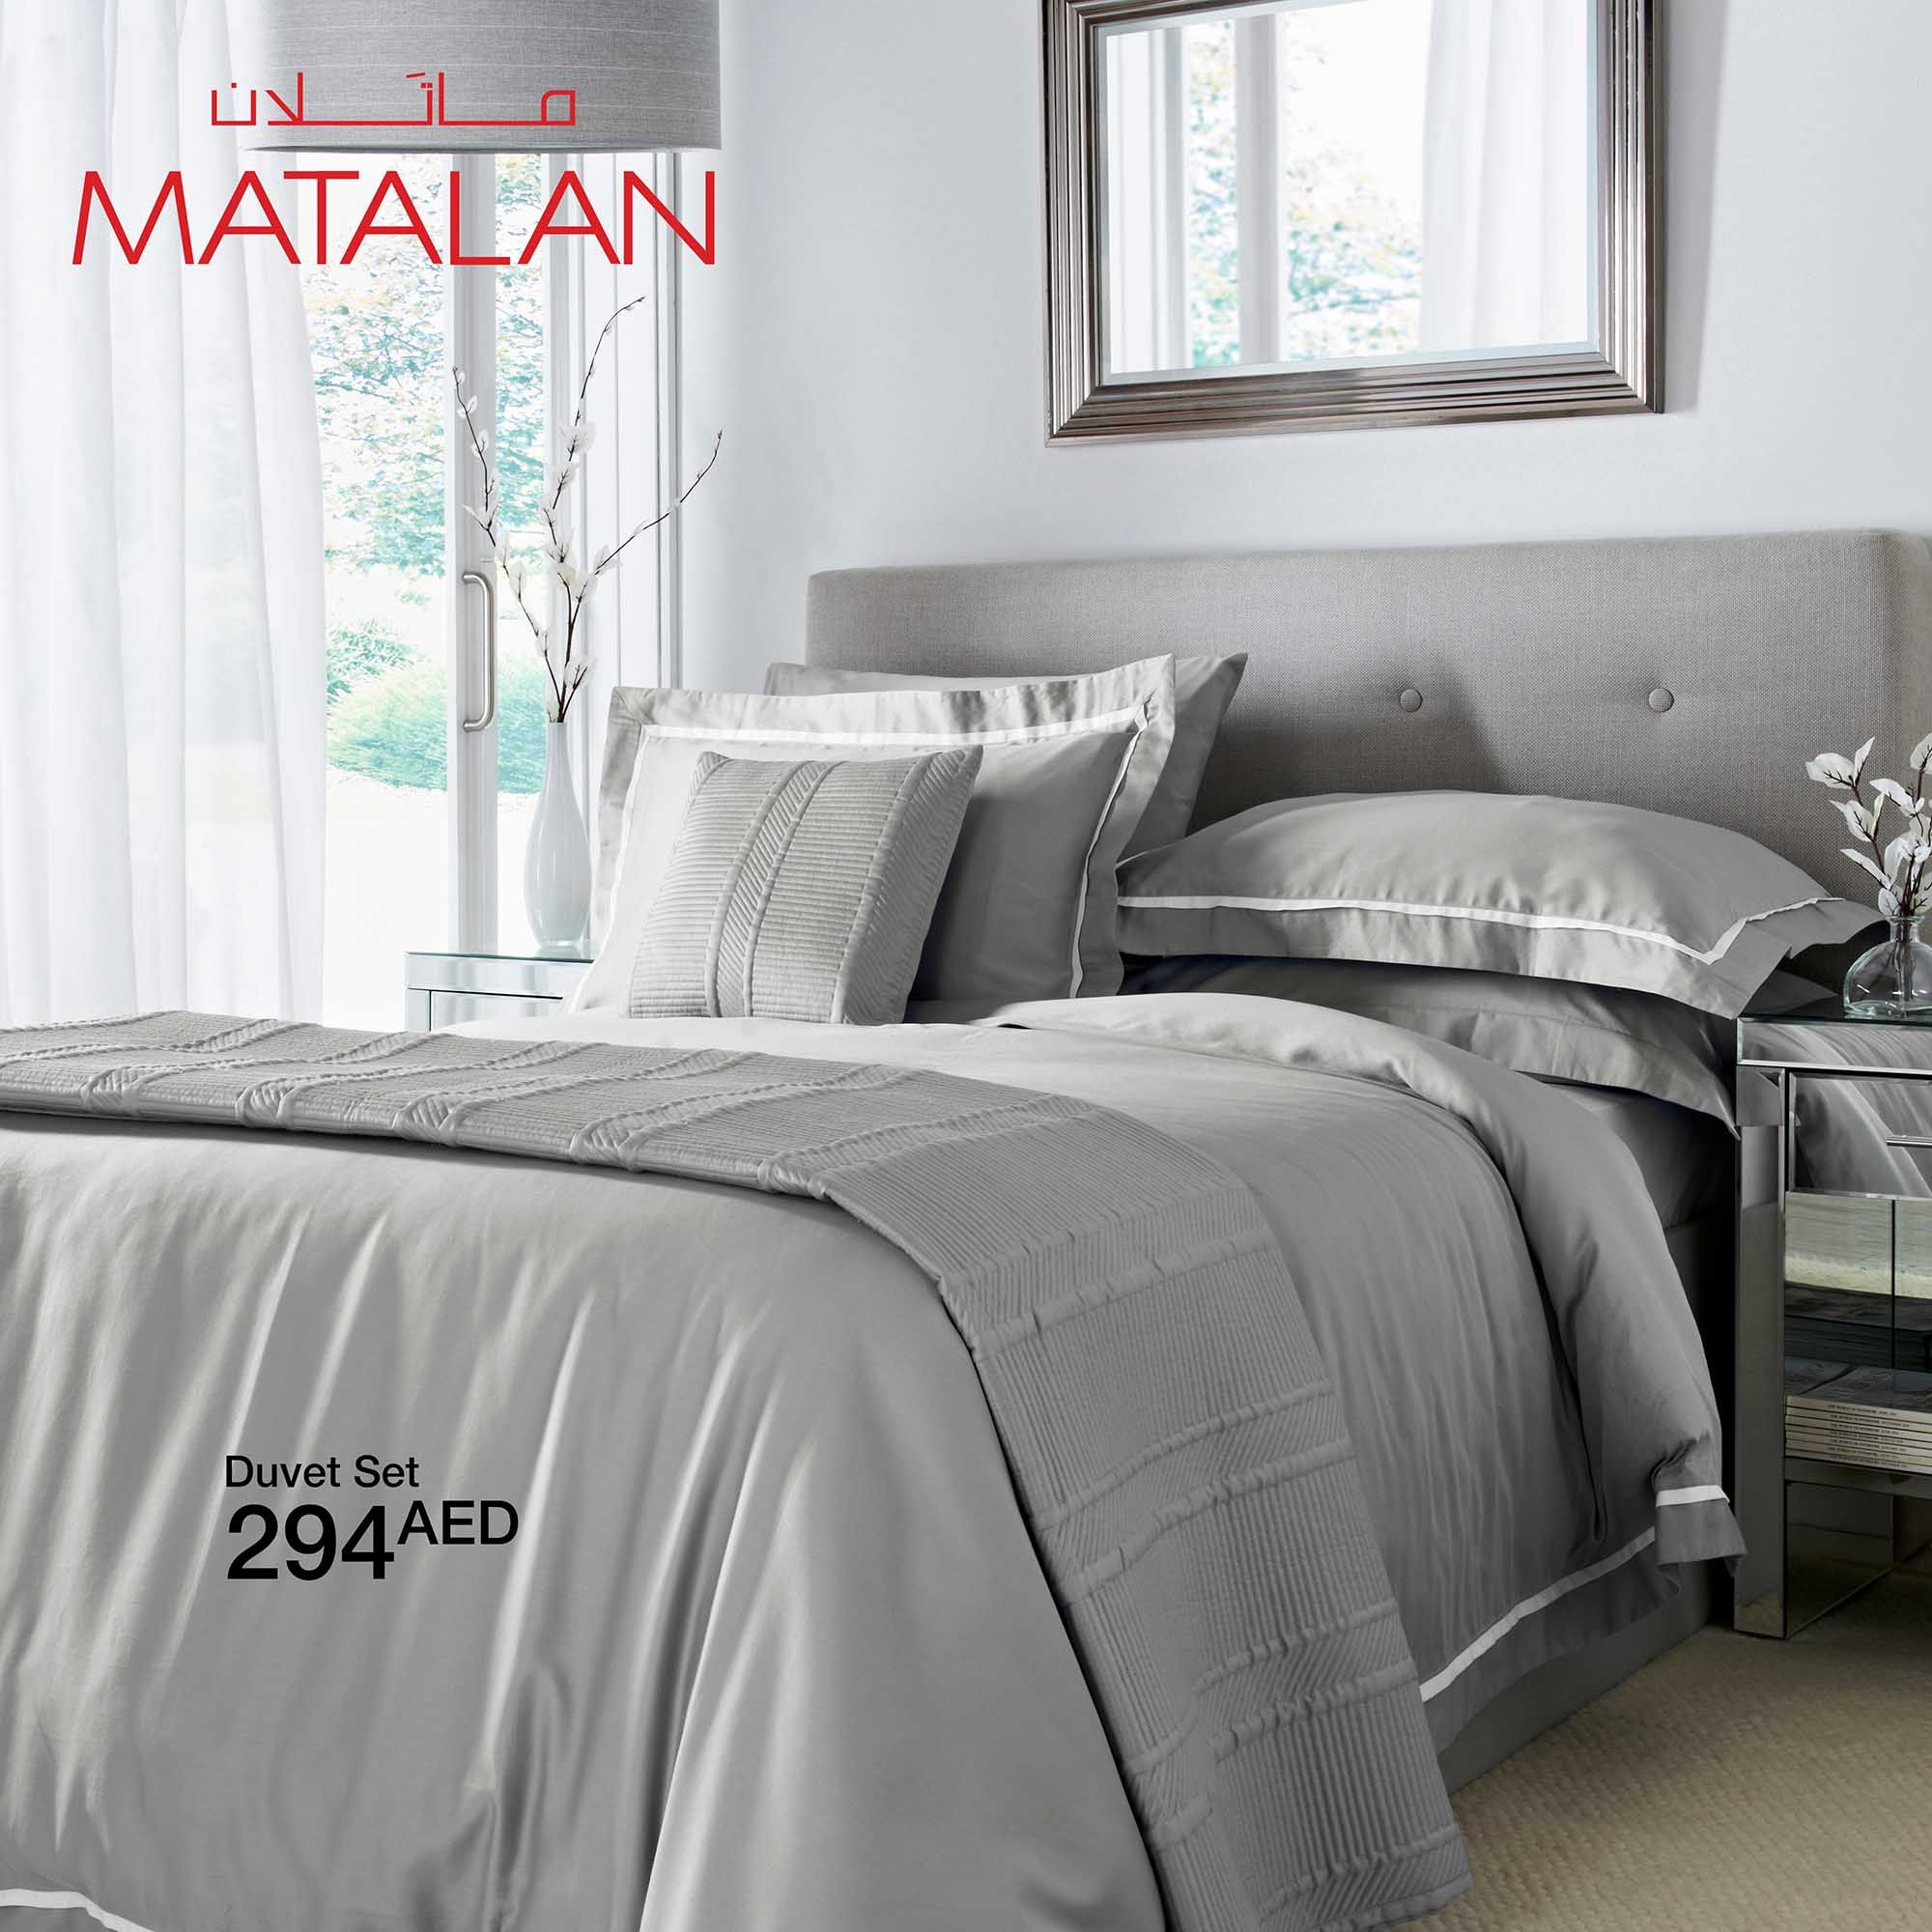 Bring Luxury Into Your Bedroom With Our Superior Brand Of Bedding